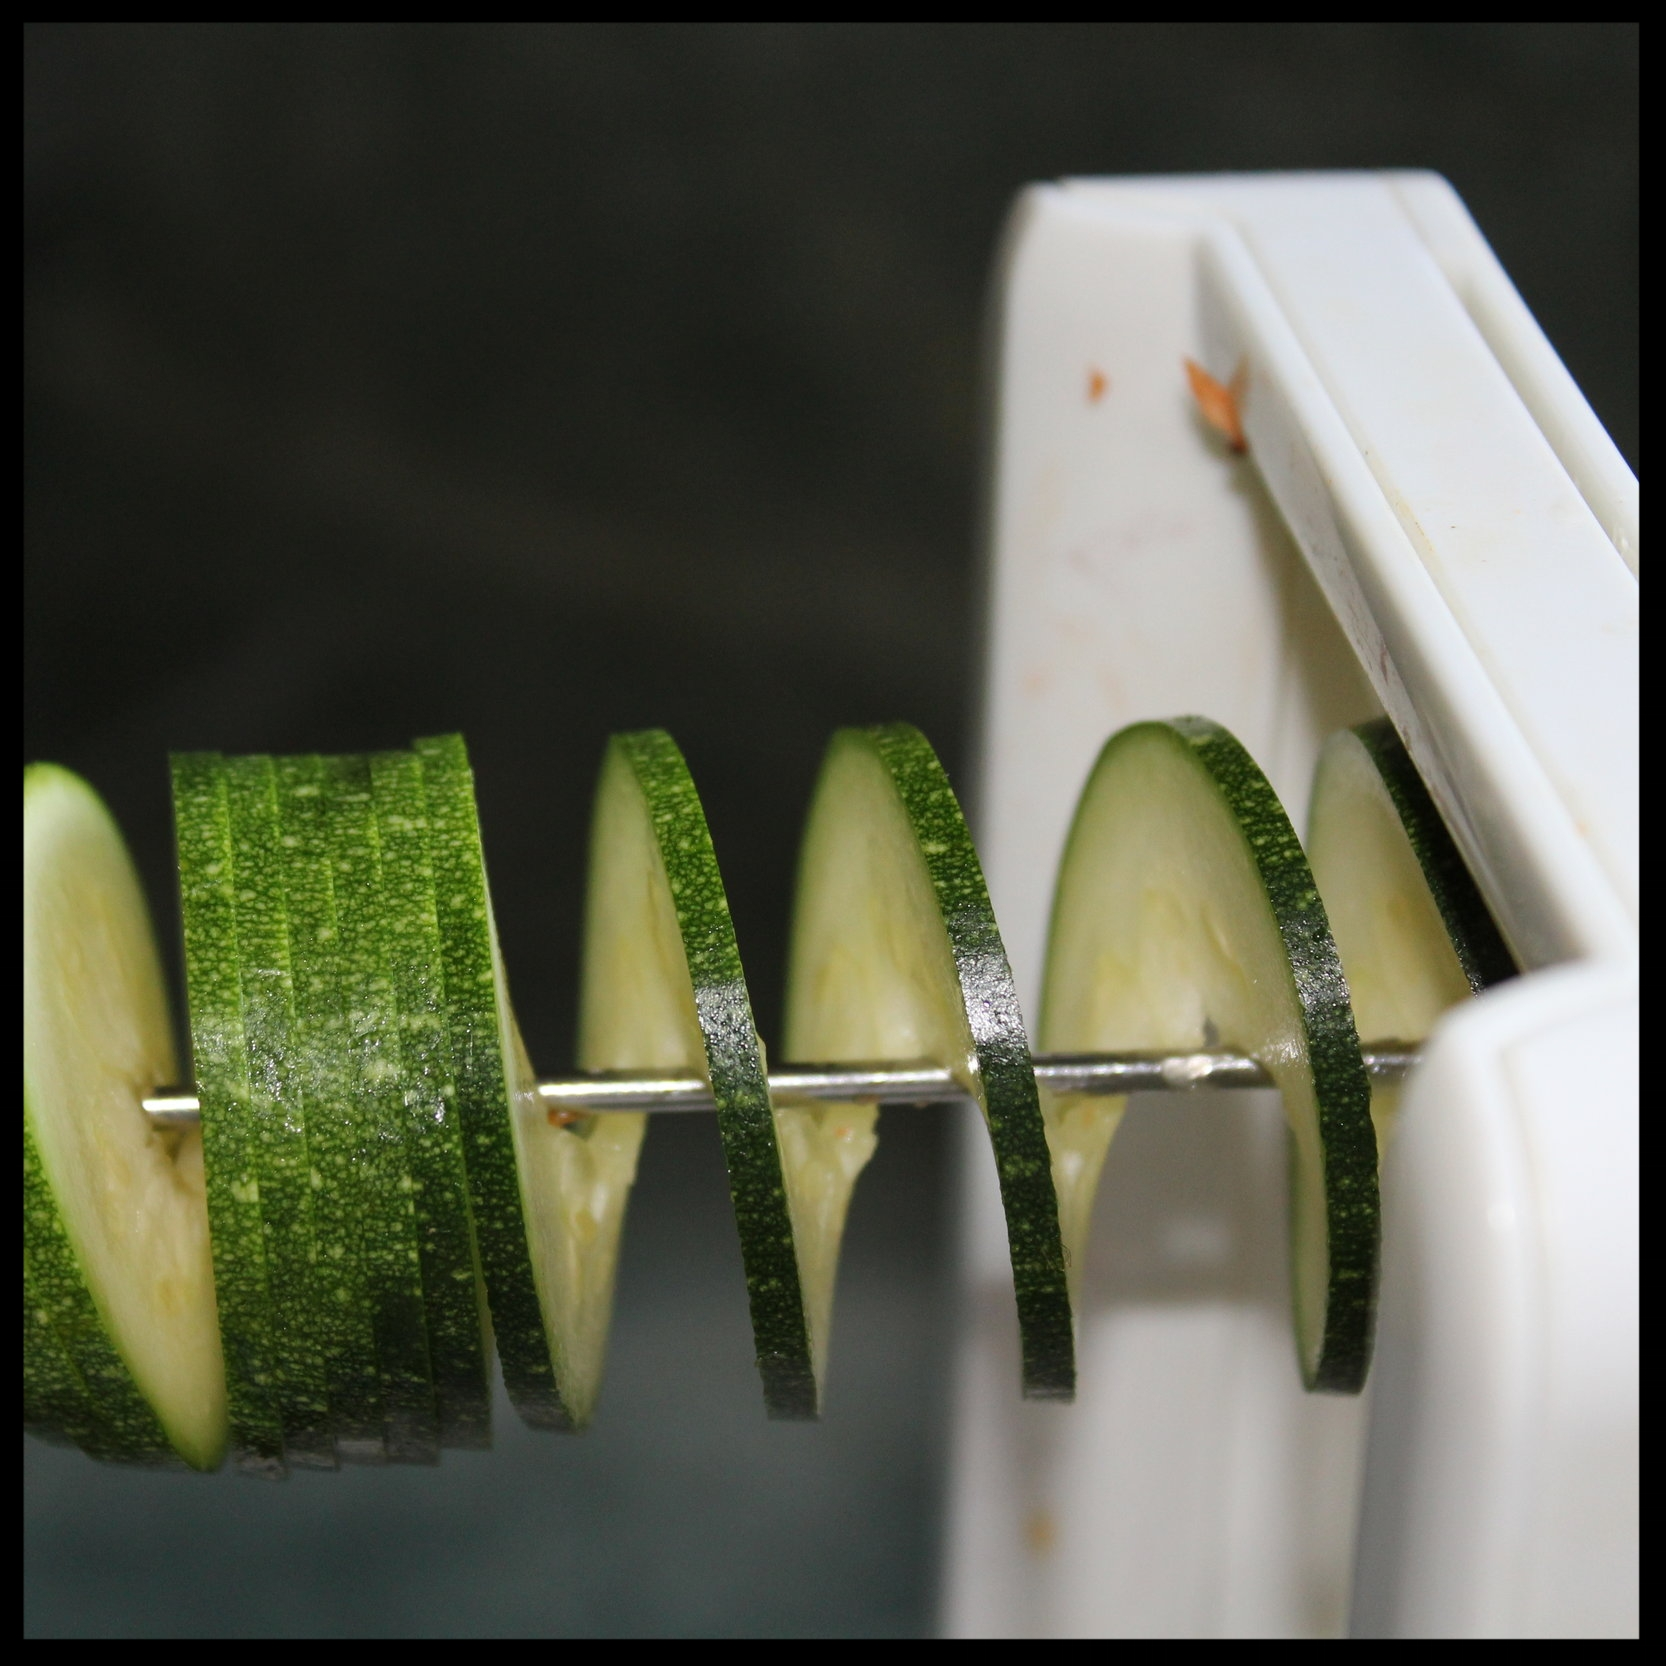 Now, run the skewer through hole in the blade plate and back into the vegetable (see the photo on the left). After several turns you'll see that the vegetable remains in one piece, but becomes a continuous corkscrew, almost like a Hawaiian lei.